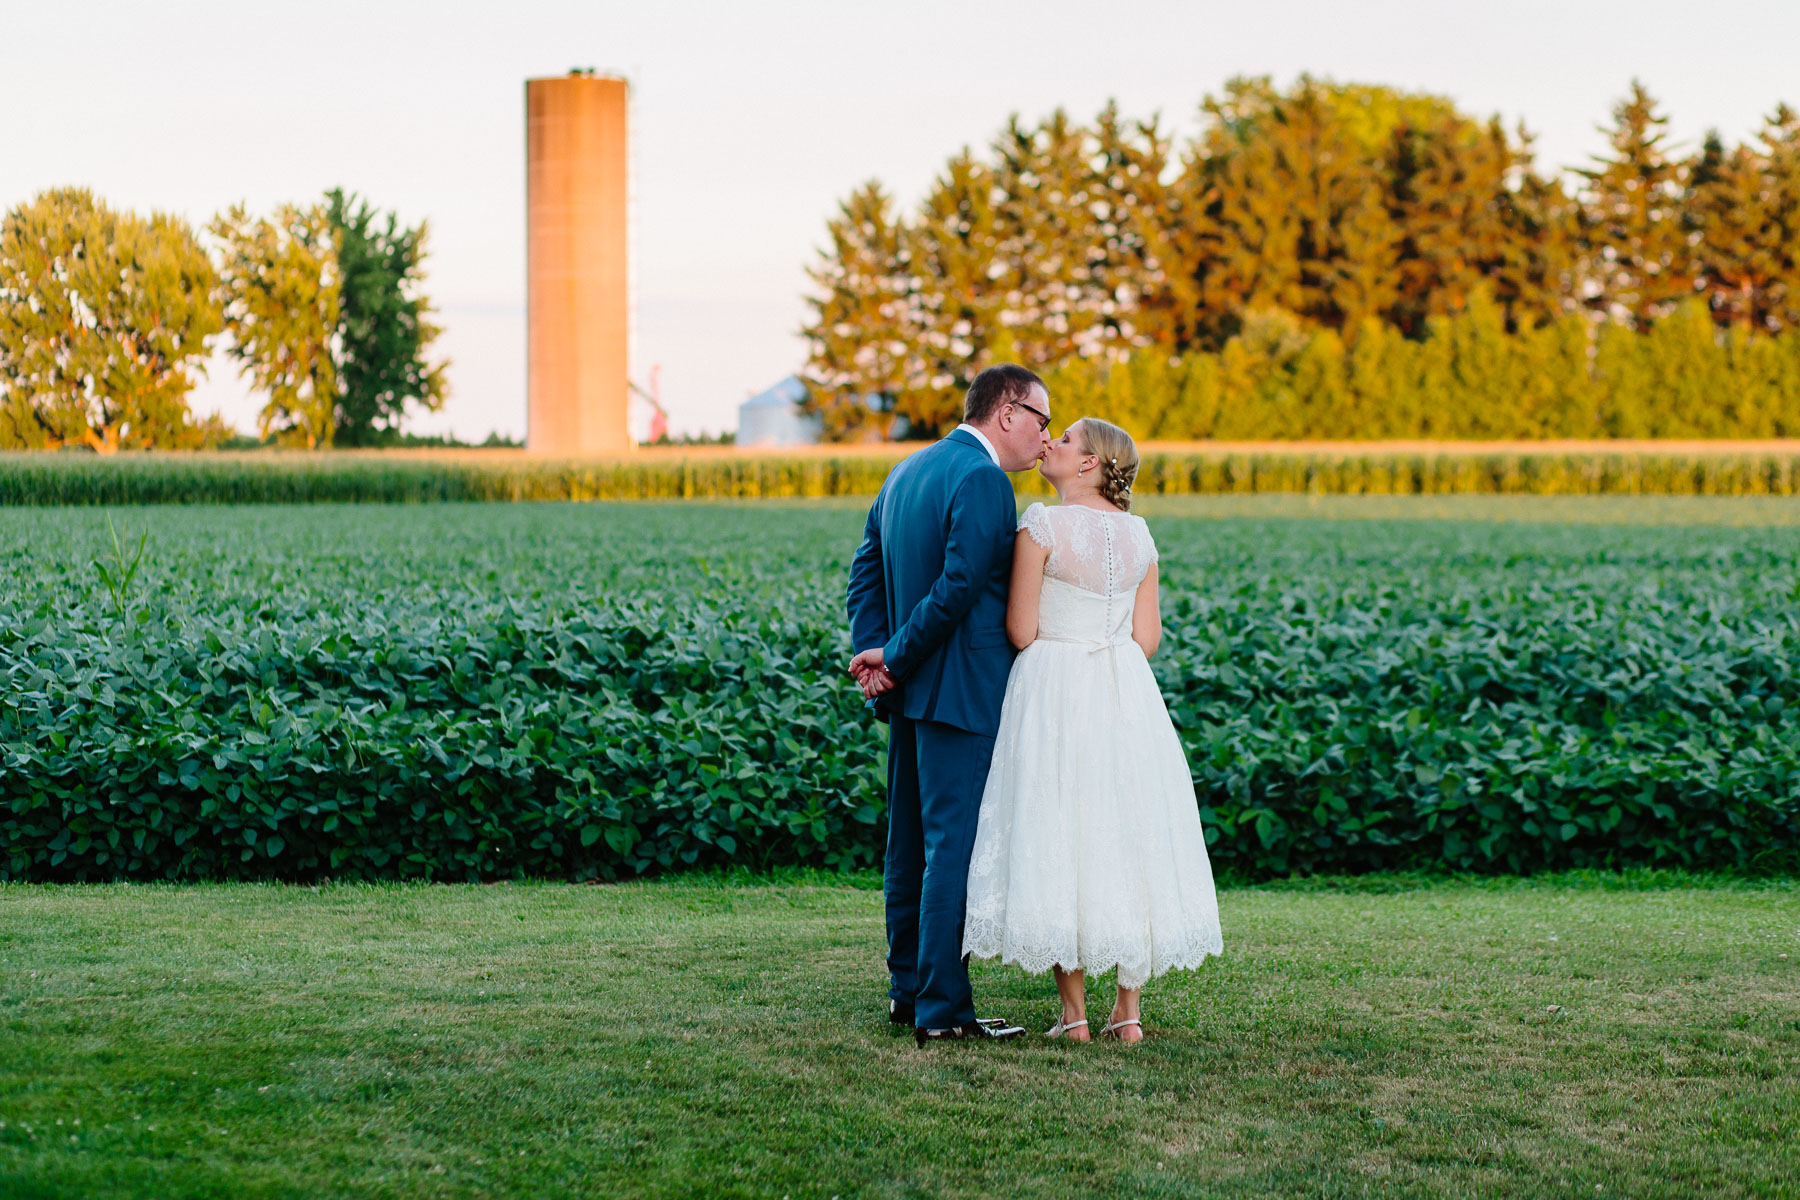 Bride and groom kissing in front of crops and silo in candid moment at a rural farm wedding.